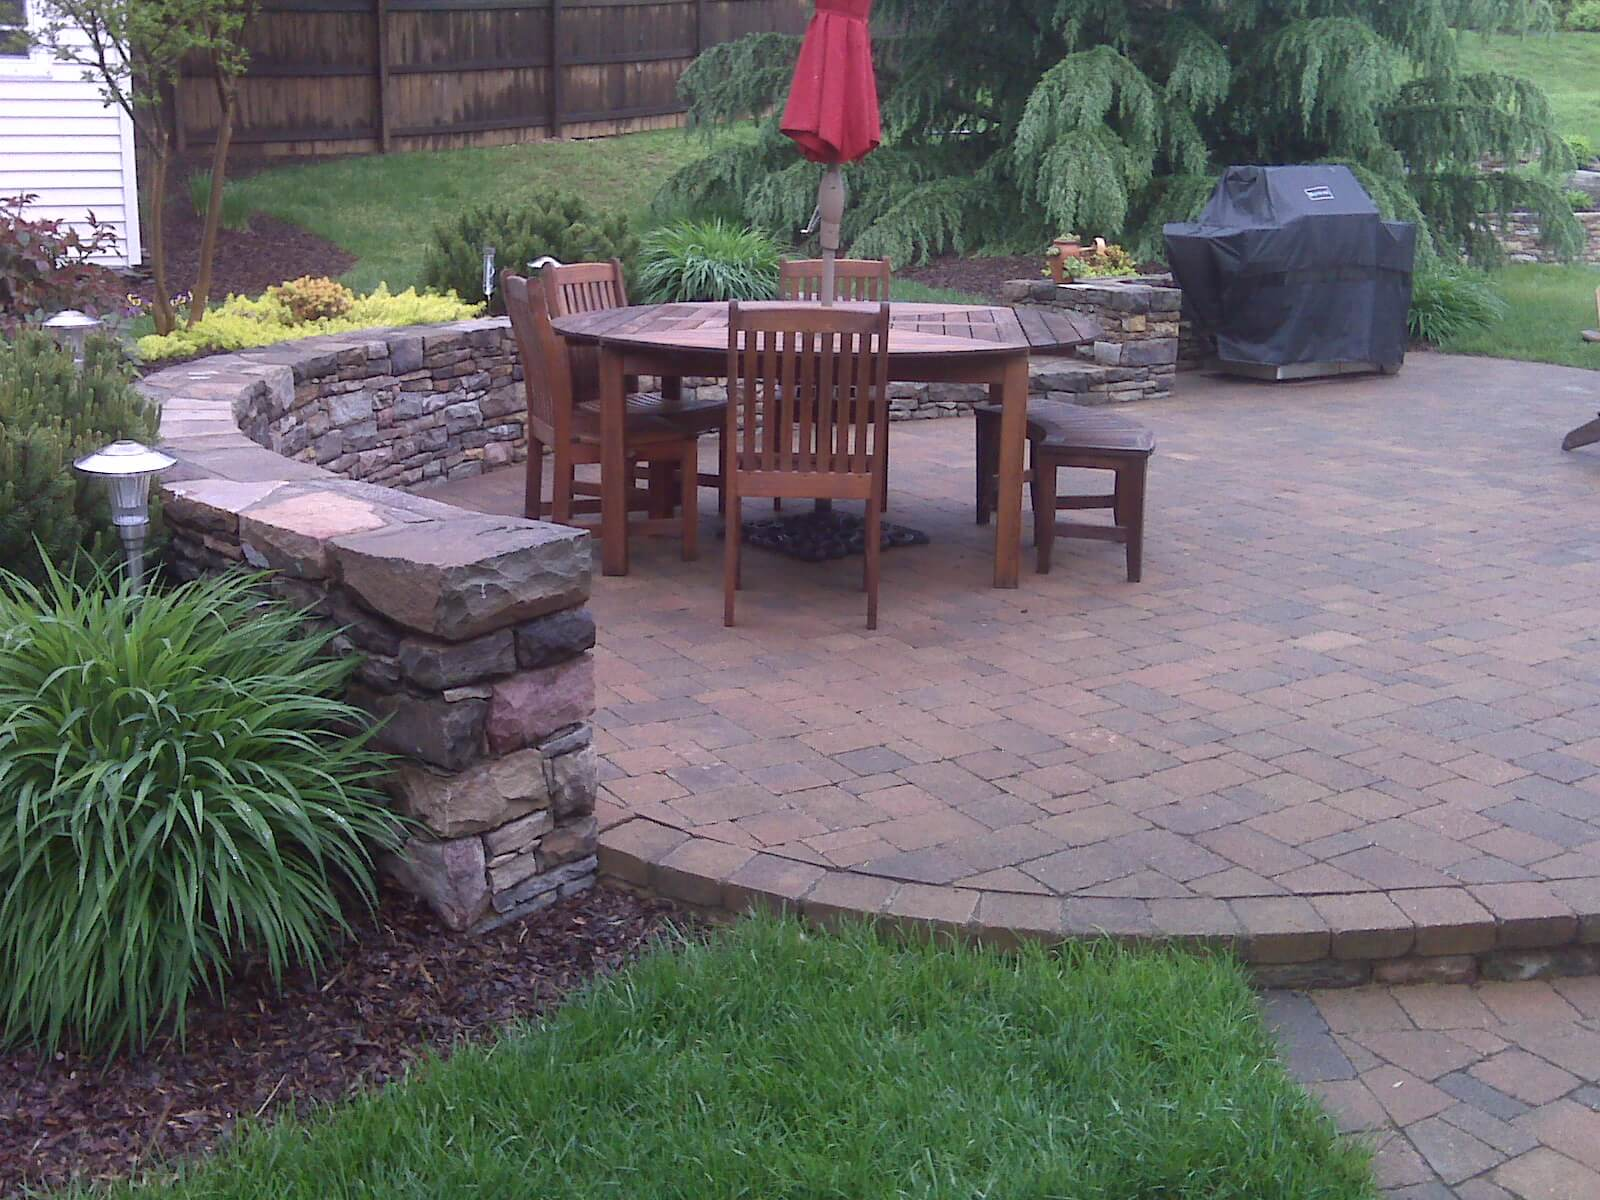 239 Circular Paver Patio and Double-Sided Stone Garden and Retaining Wall